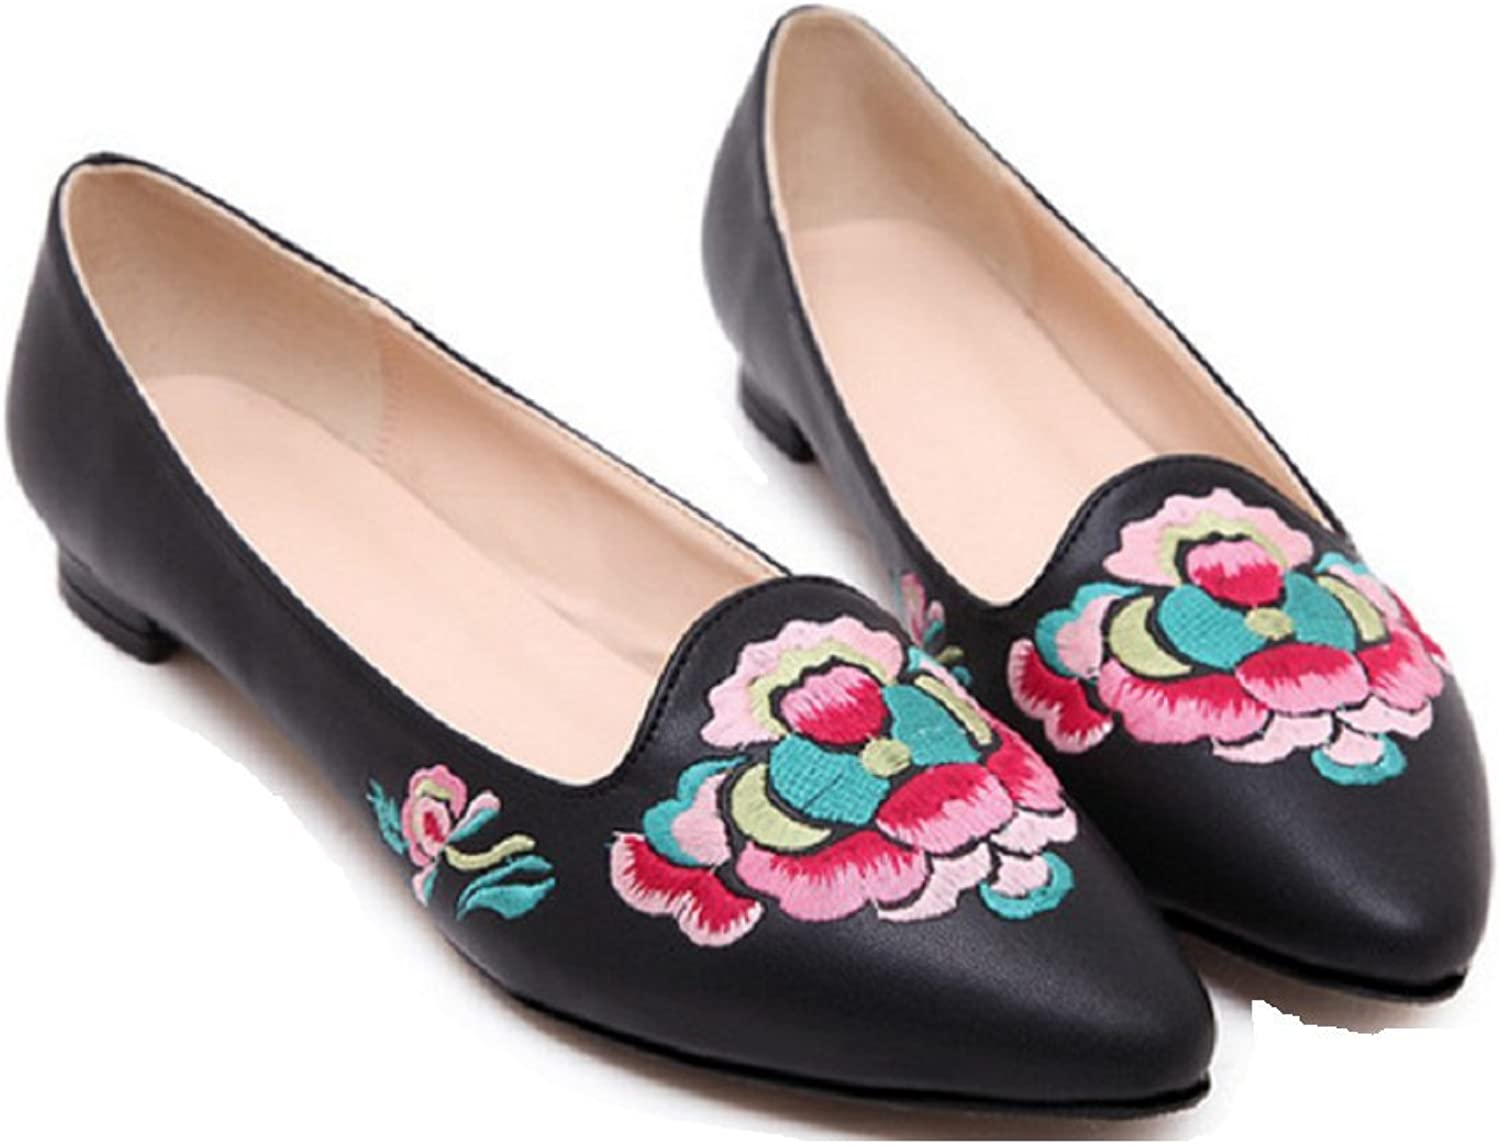 Tianrui Crown Women and Ladies' Embroidery Slip-on Loafer Flat Single shoes